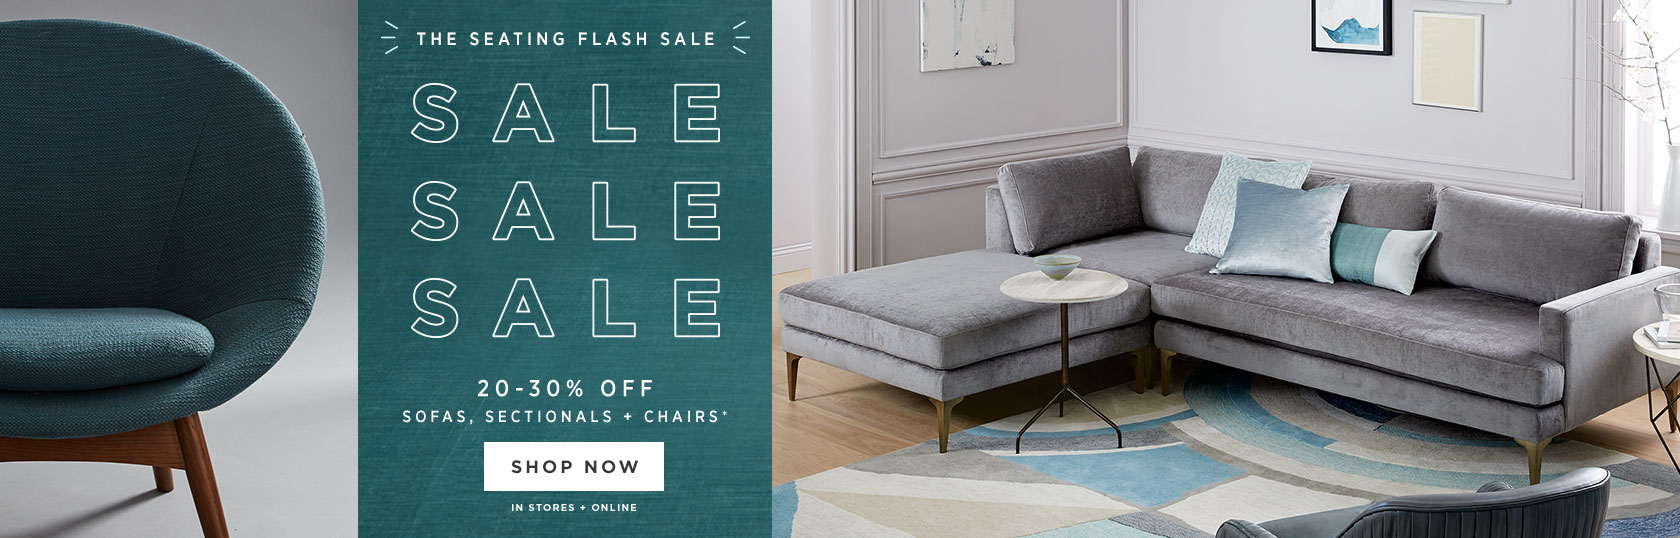 20-30% Off Sofas, Sectionals + Chairs